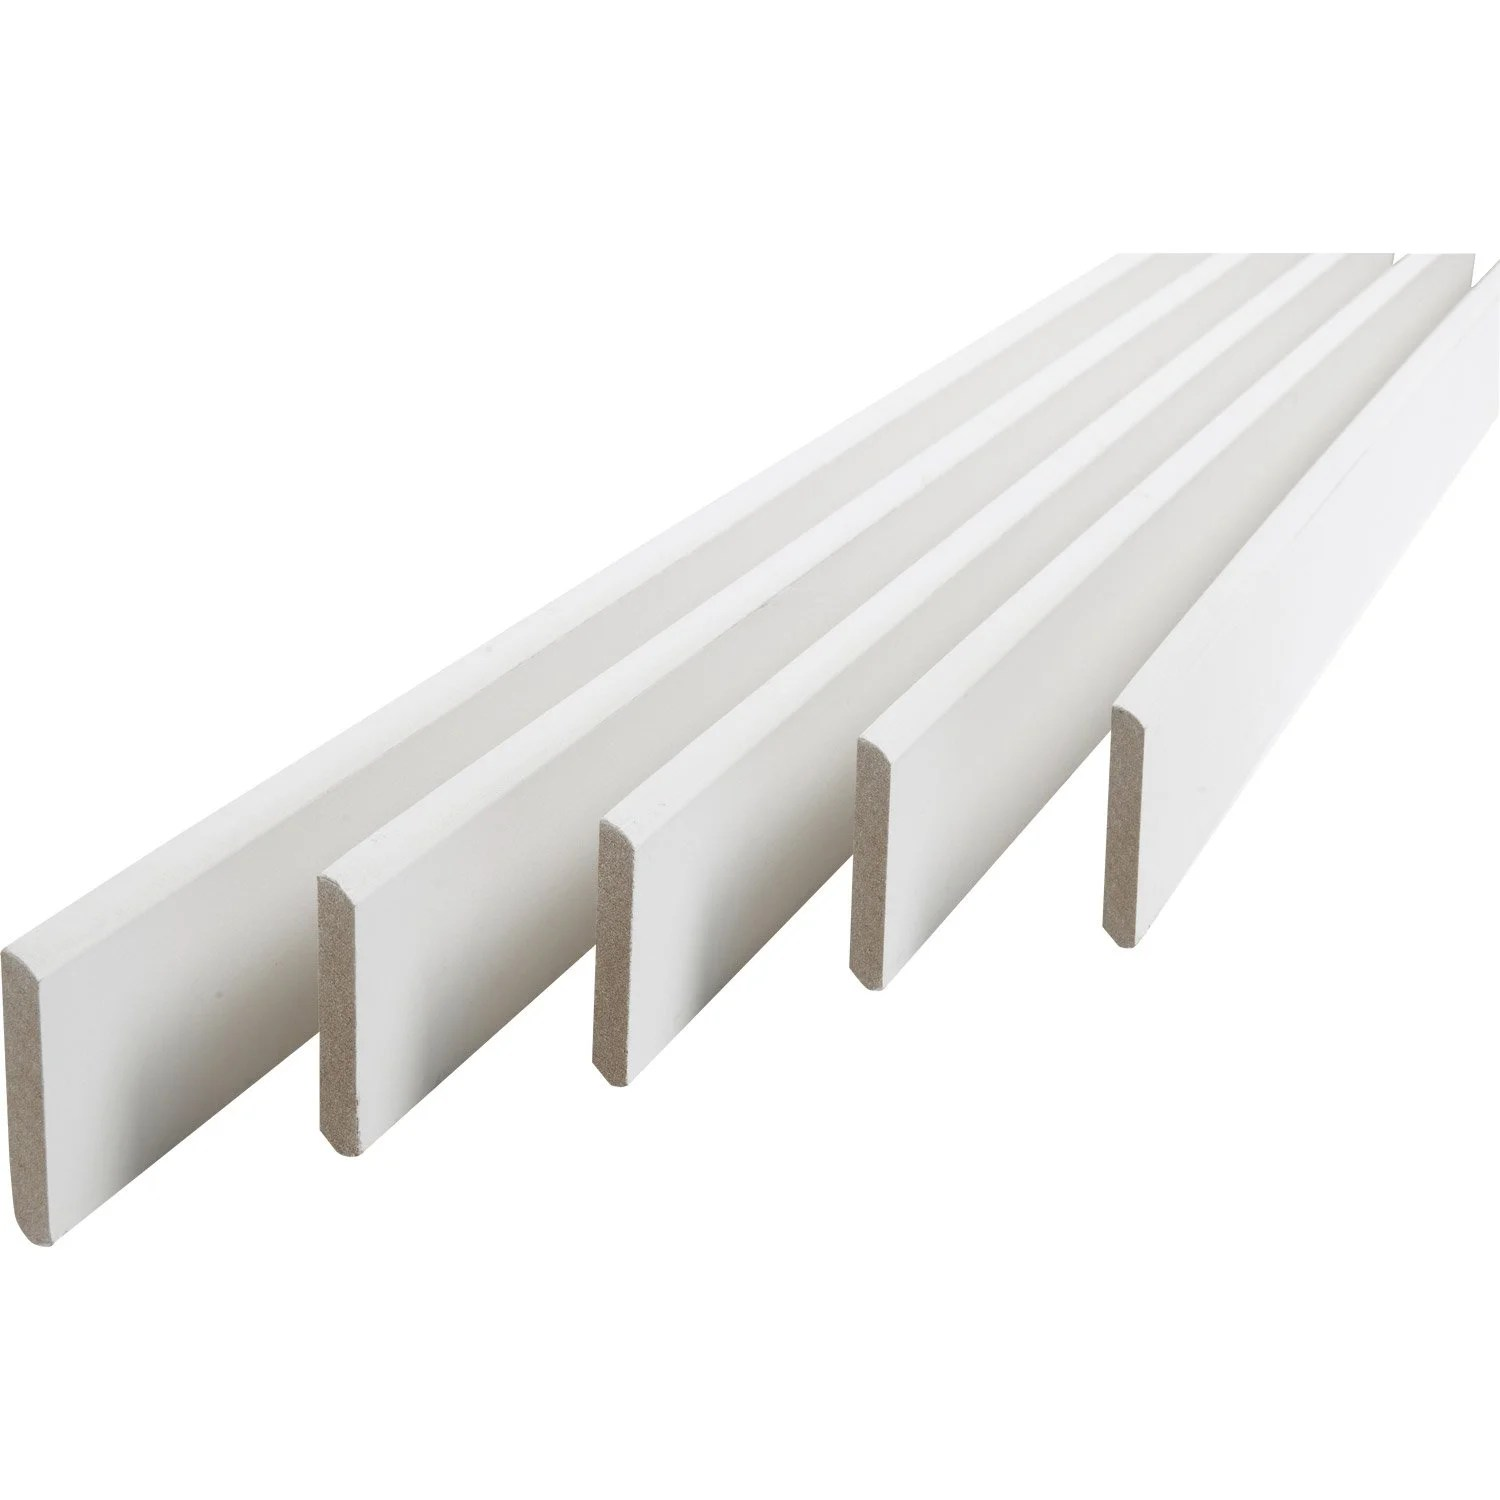 Plinthes Pvc Leroy Merlin Lot De 5 Plinthes Médium Mdf Arrondies Peint Blanc 9 X 70 Mm L 2 M